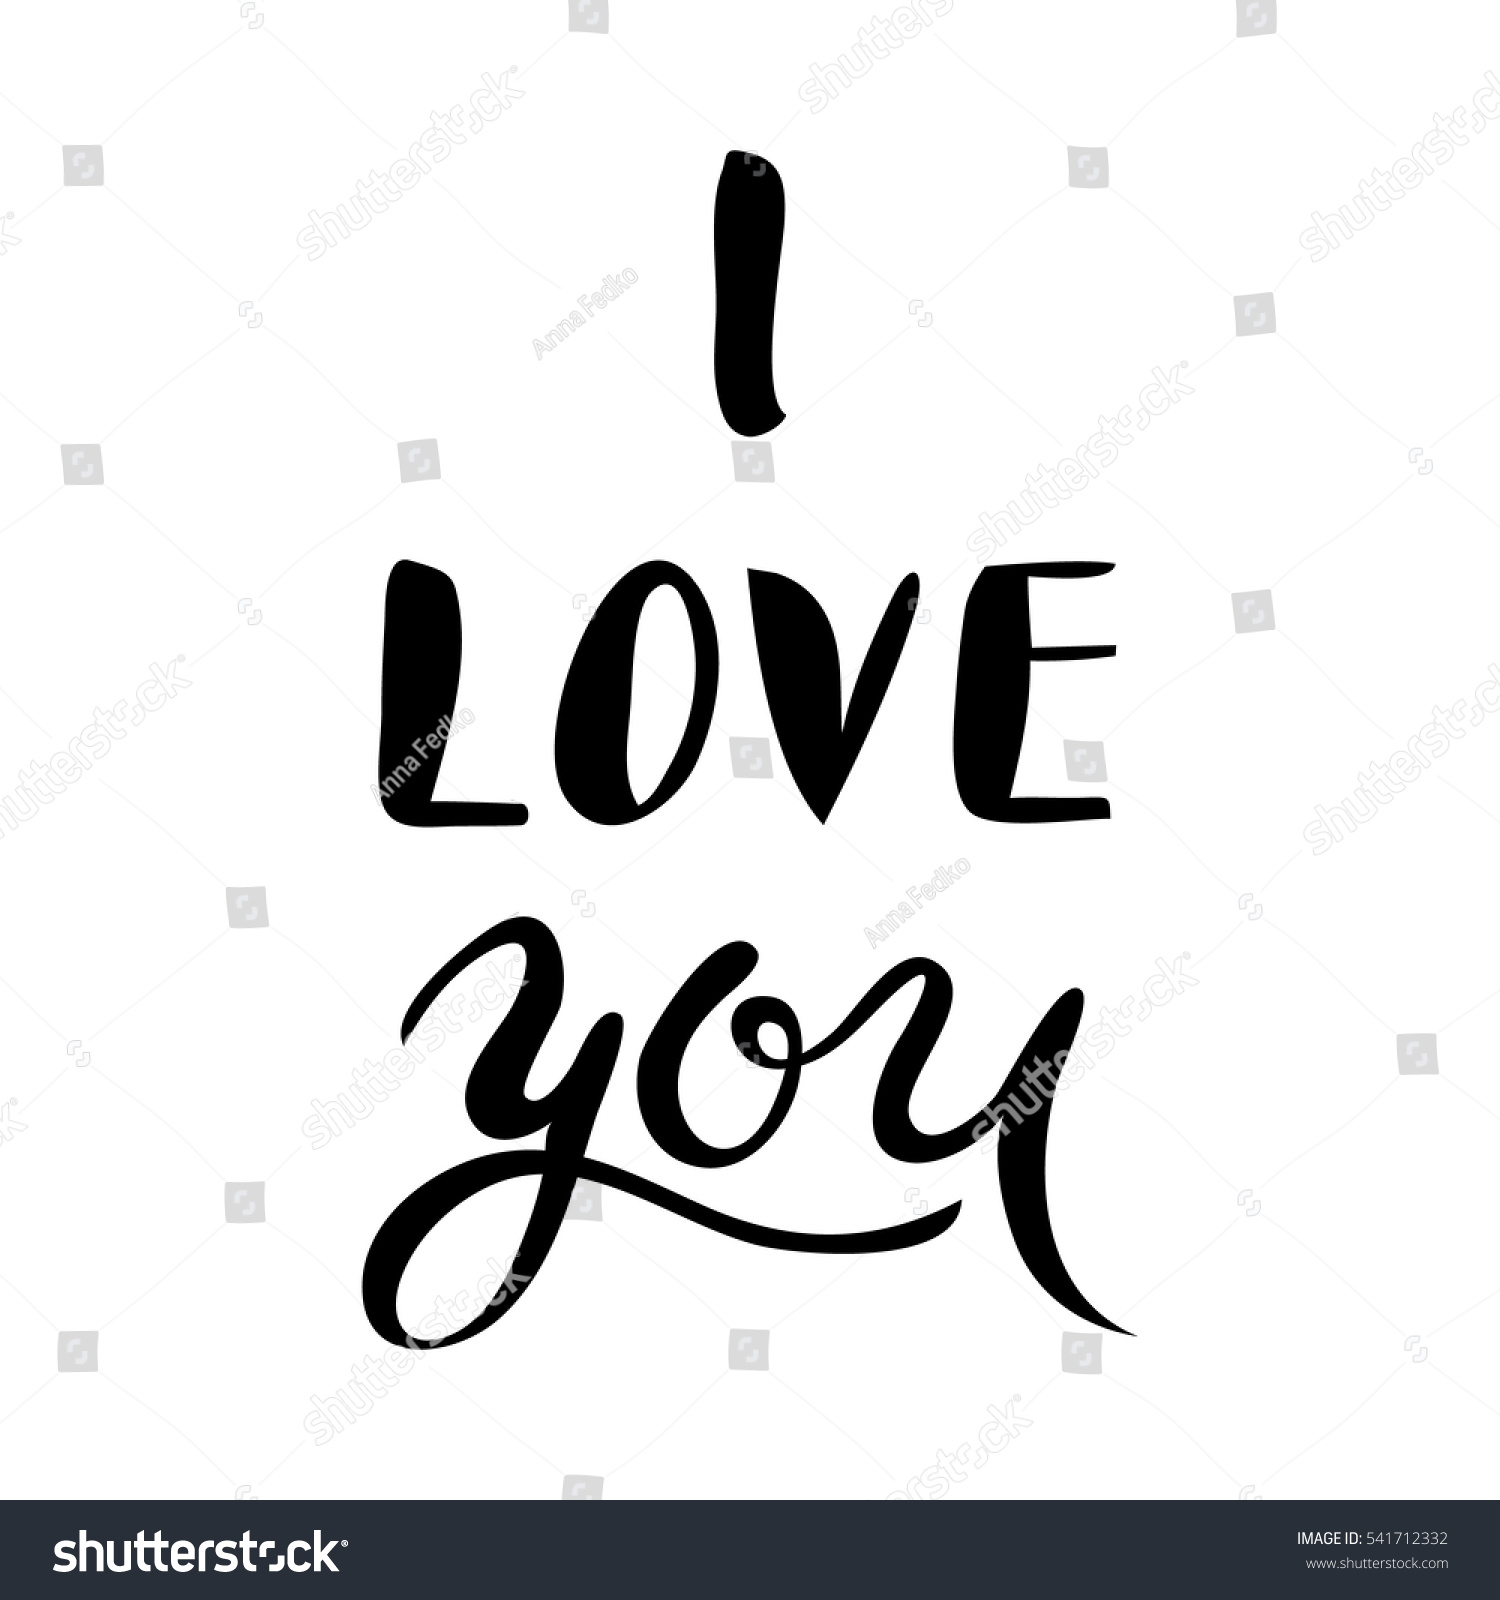 I love you hand lettering handmade stock vector 541712332 I love you calligraphy